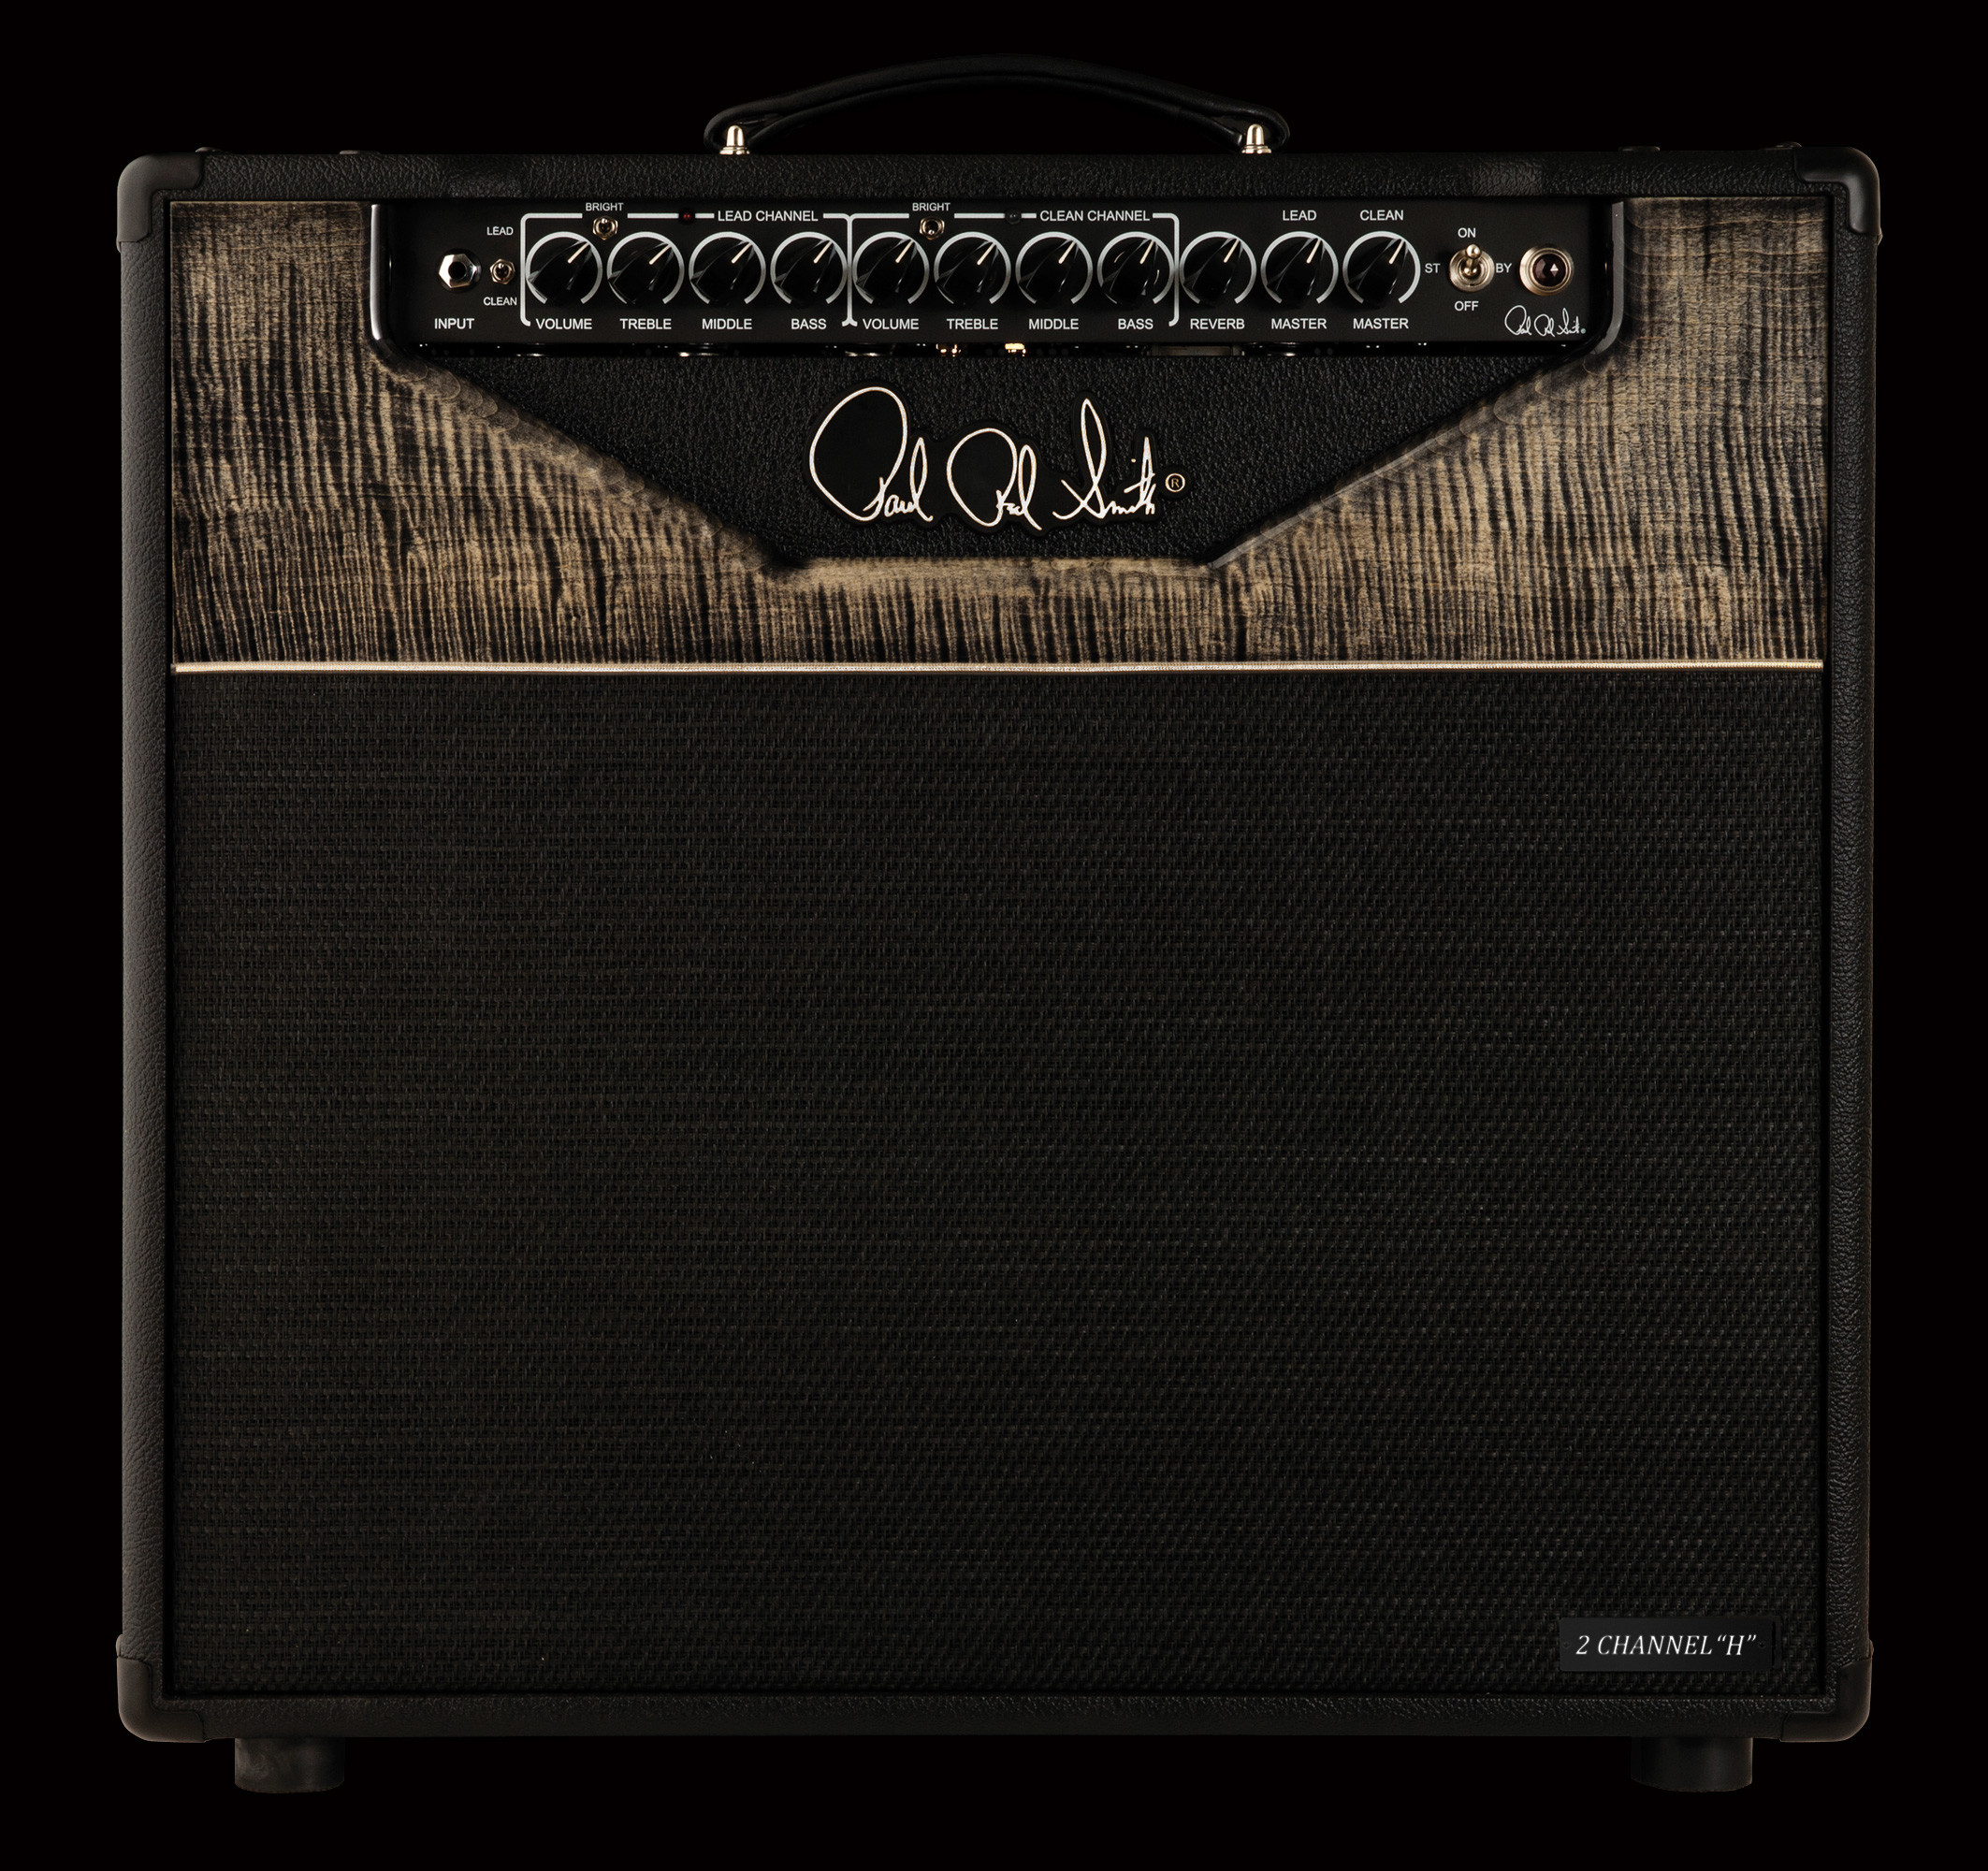 2125x2000 PRS Guitars' core amplifier line is set to be offered with curly maple  fascias as a standard feature, stained Charcoal. Introduced in 2009, the  core line ...